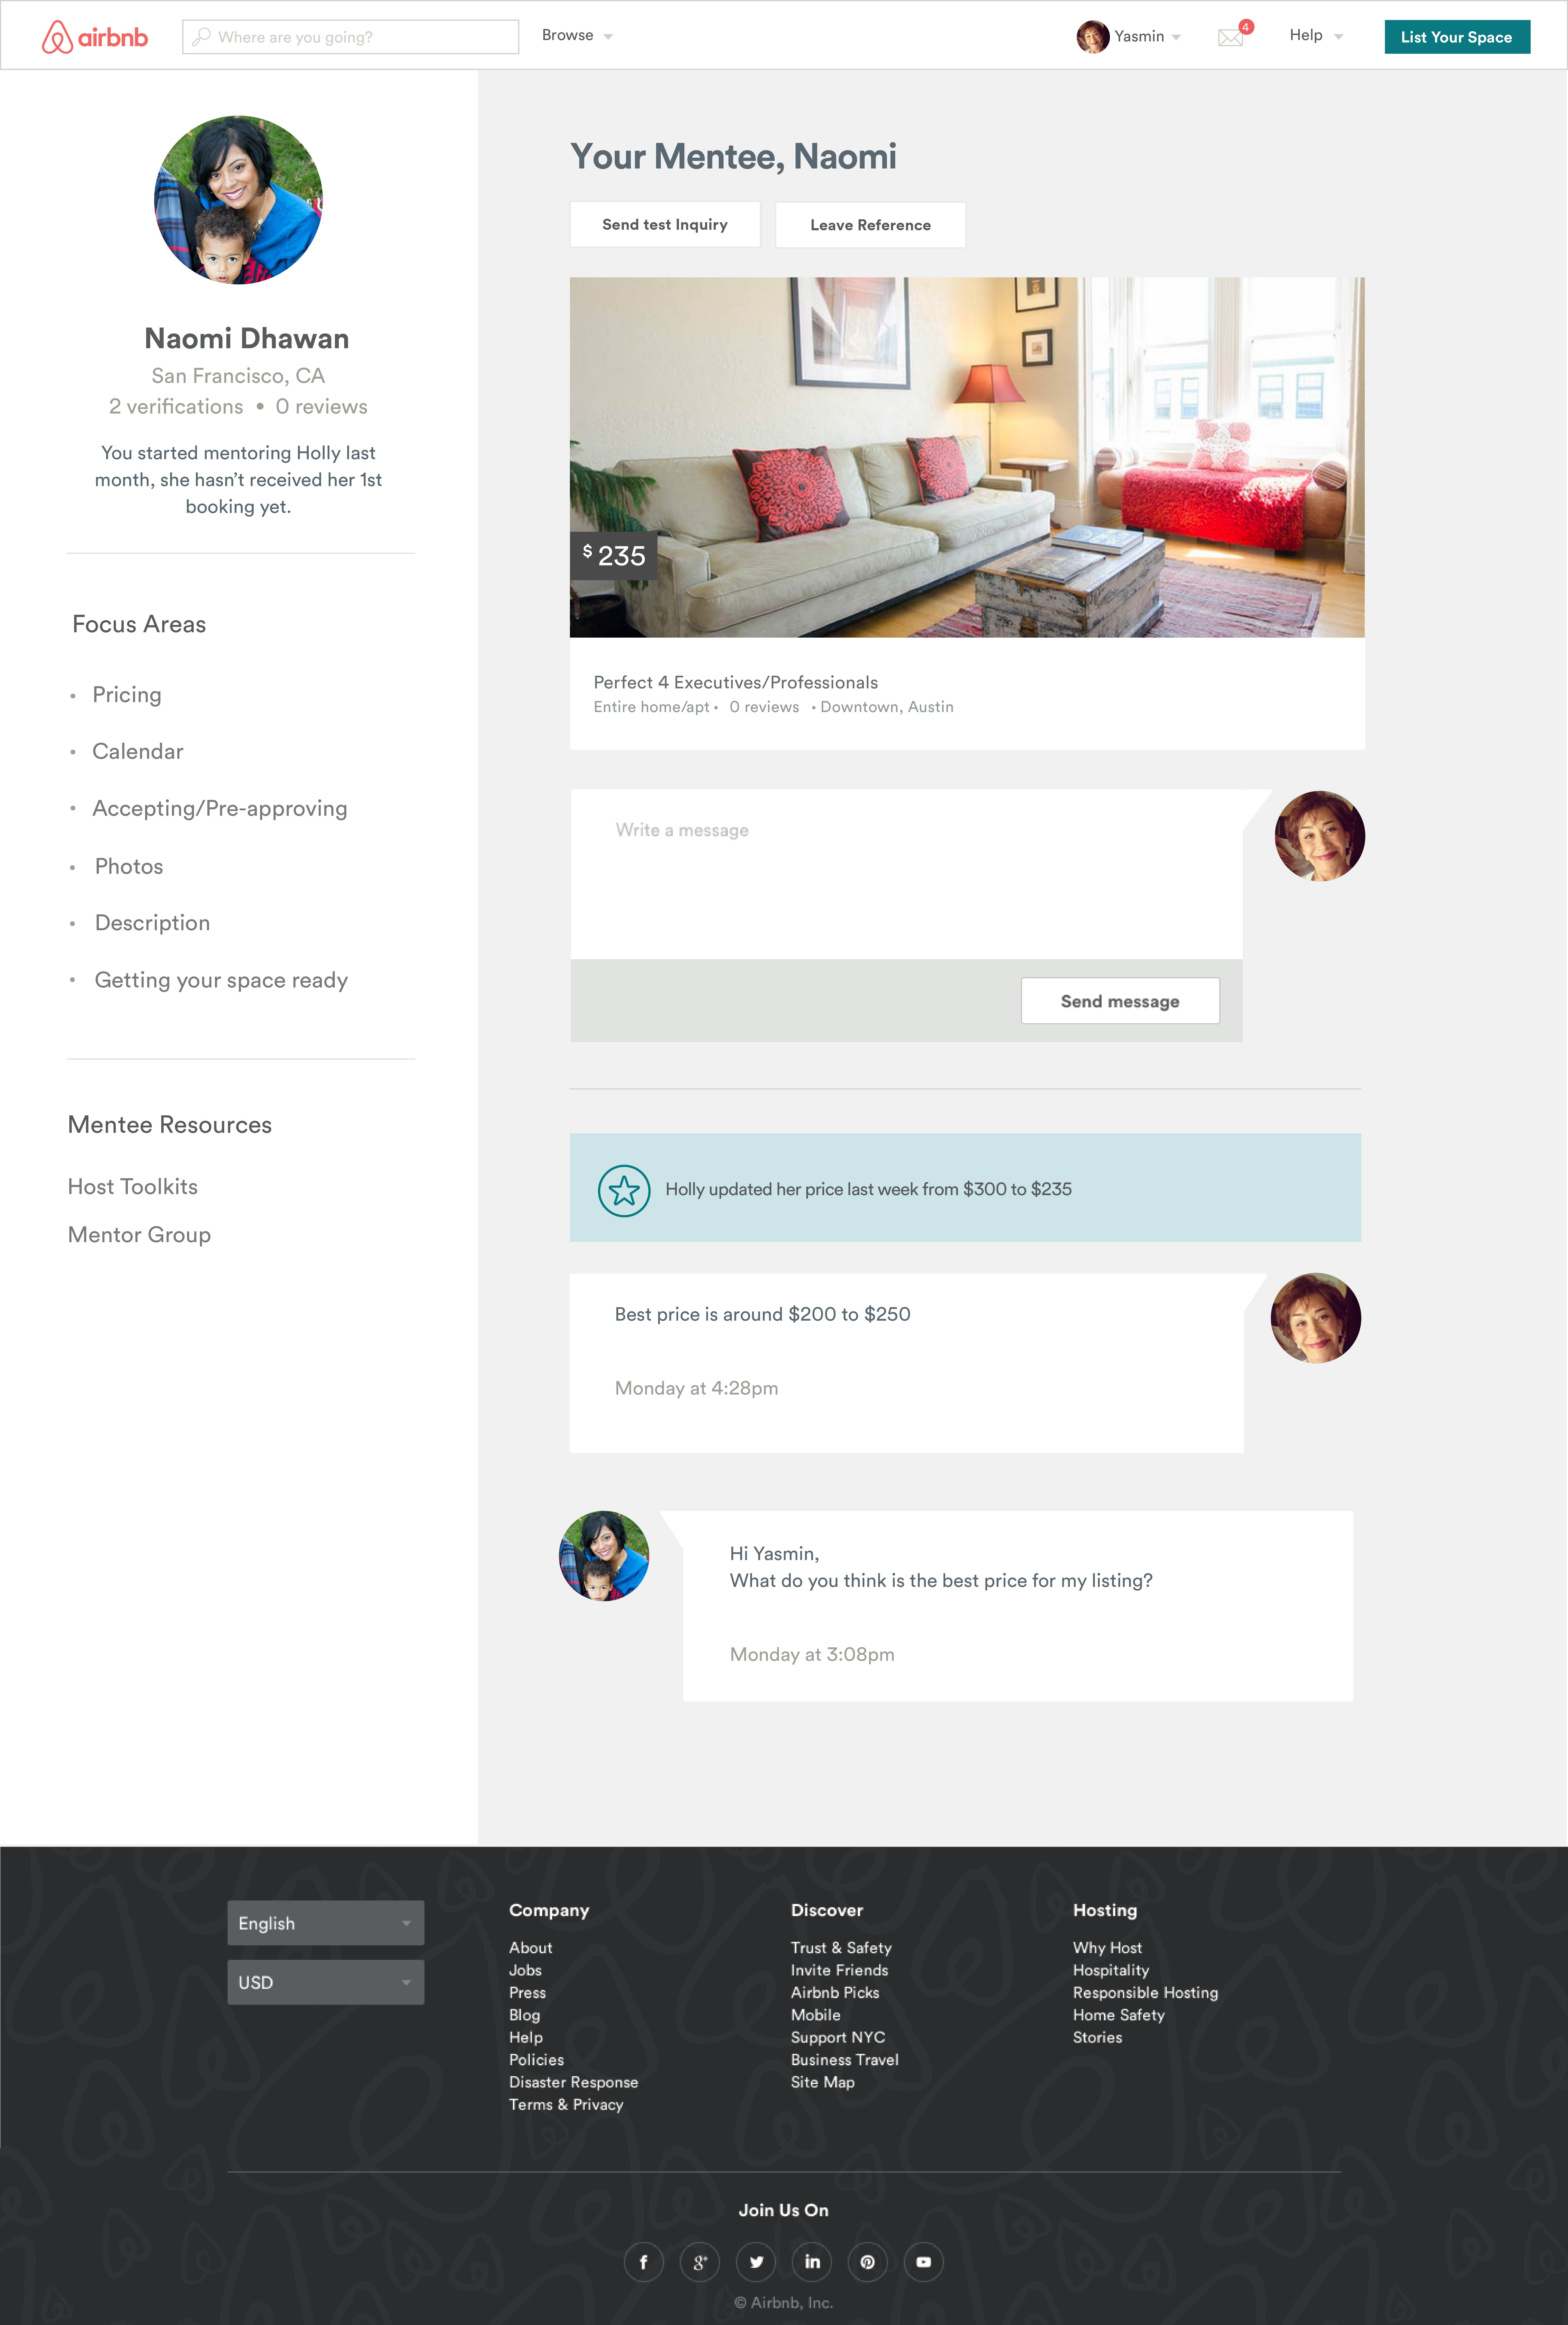 Airbnb to mentor new hosts, adds 'smart' tools to foster better